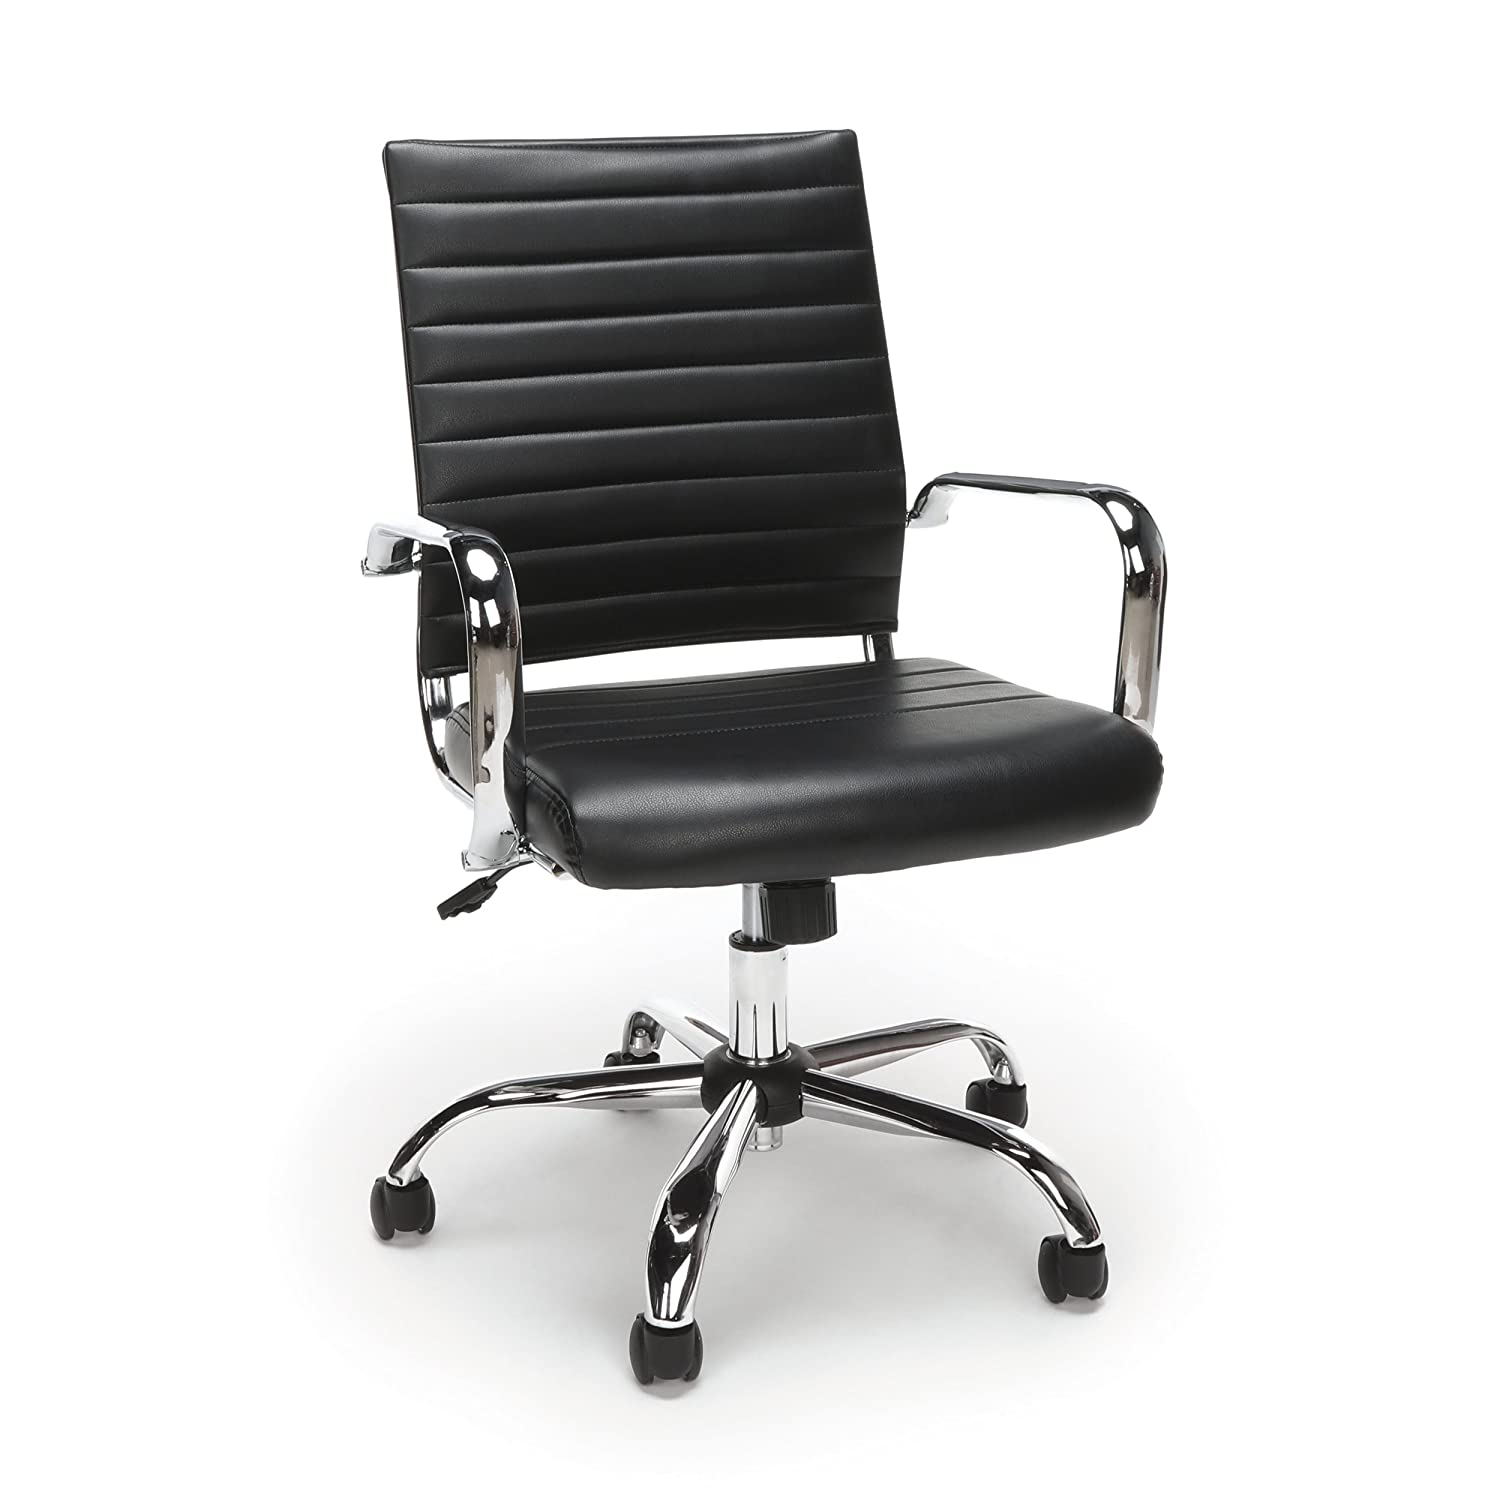 Essentials Soft Ribbed Leather Executive Conference Chair with Arms – Ergonomic Adjustable Swivel Chair, Black Chrome